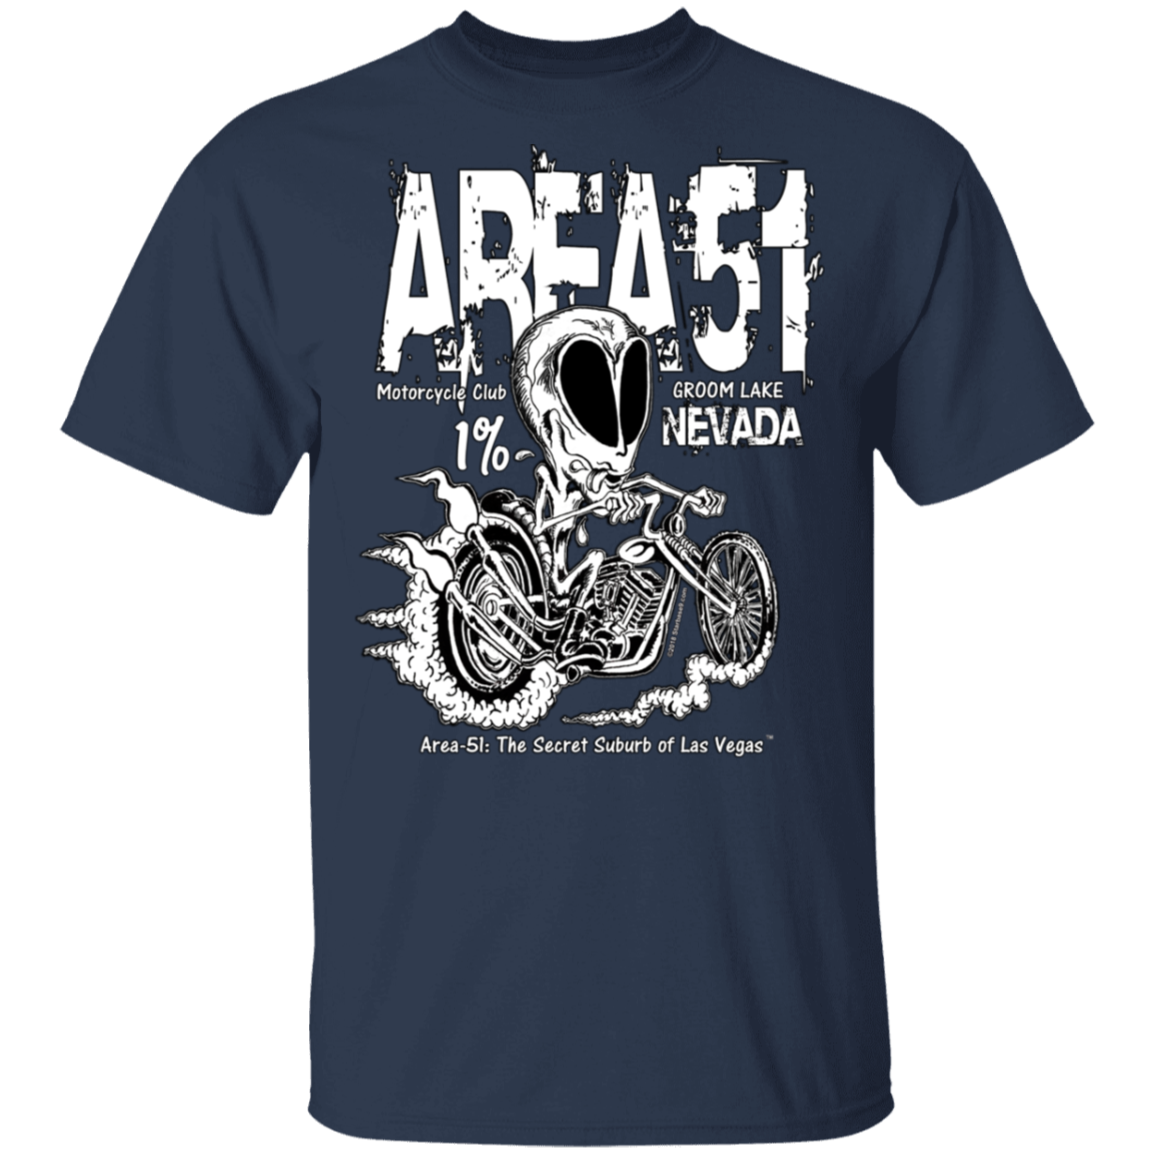 Area51 Rat Bike T-Shirt 5.3 oz. - Starbase9